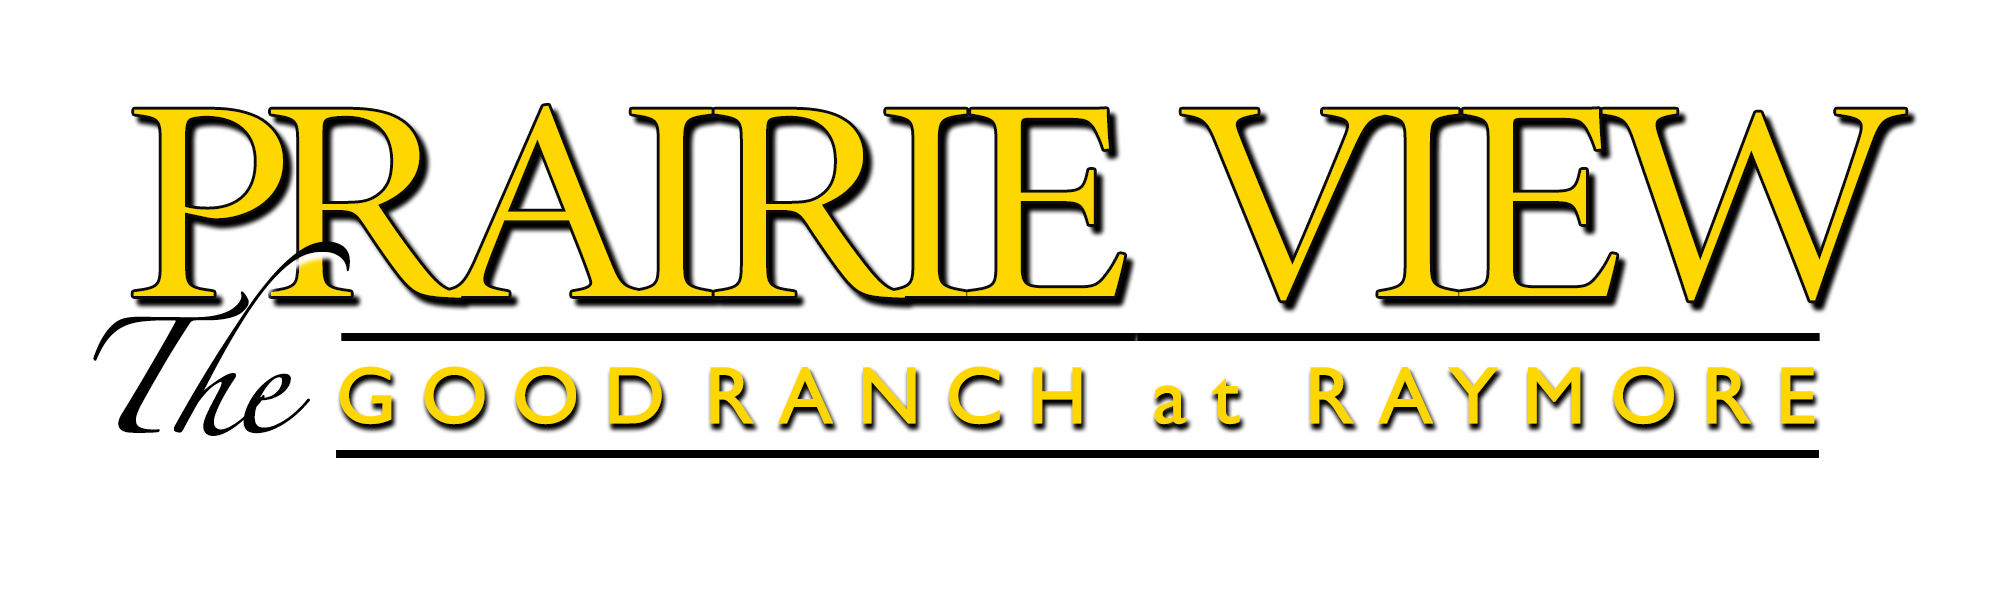 Prairie View at The Good Ranch